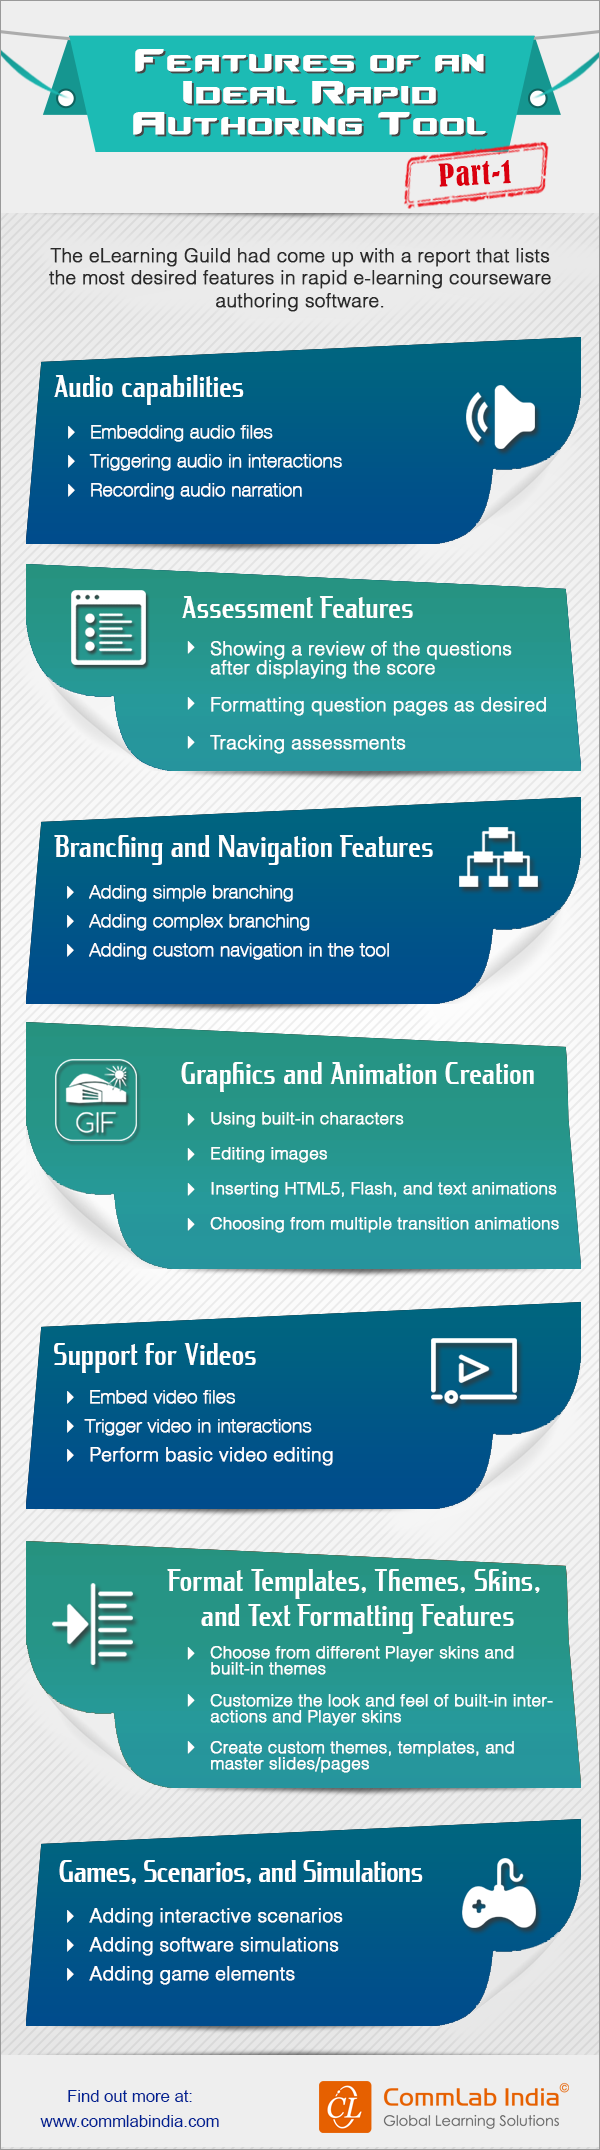 Features of an Ideal Rapid eLearning Authoring Tool - Part I [Infographic]